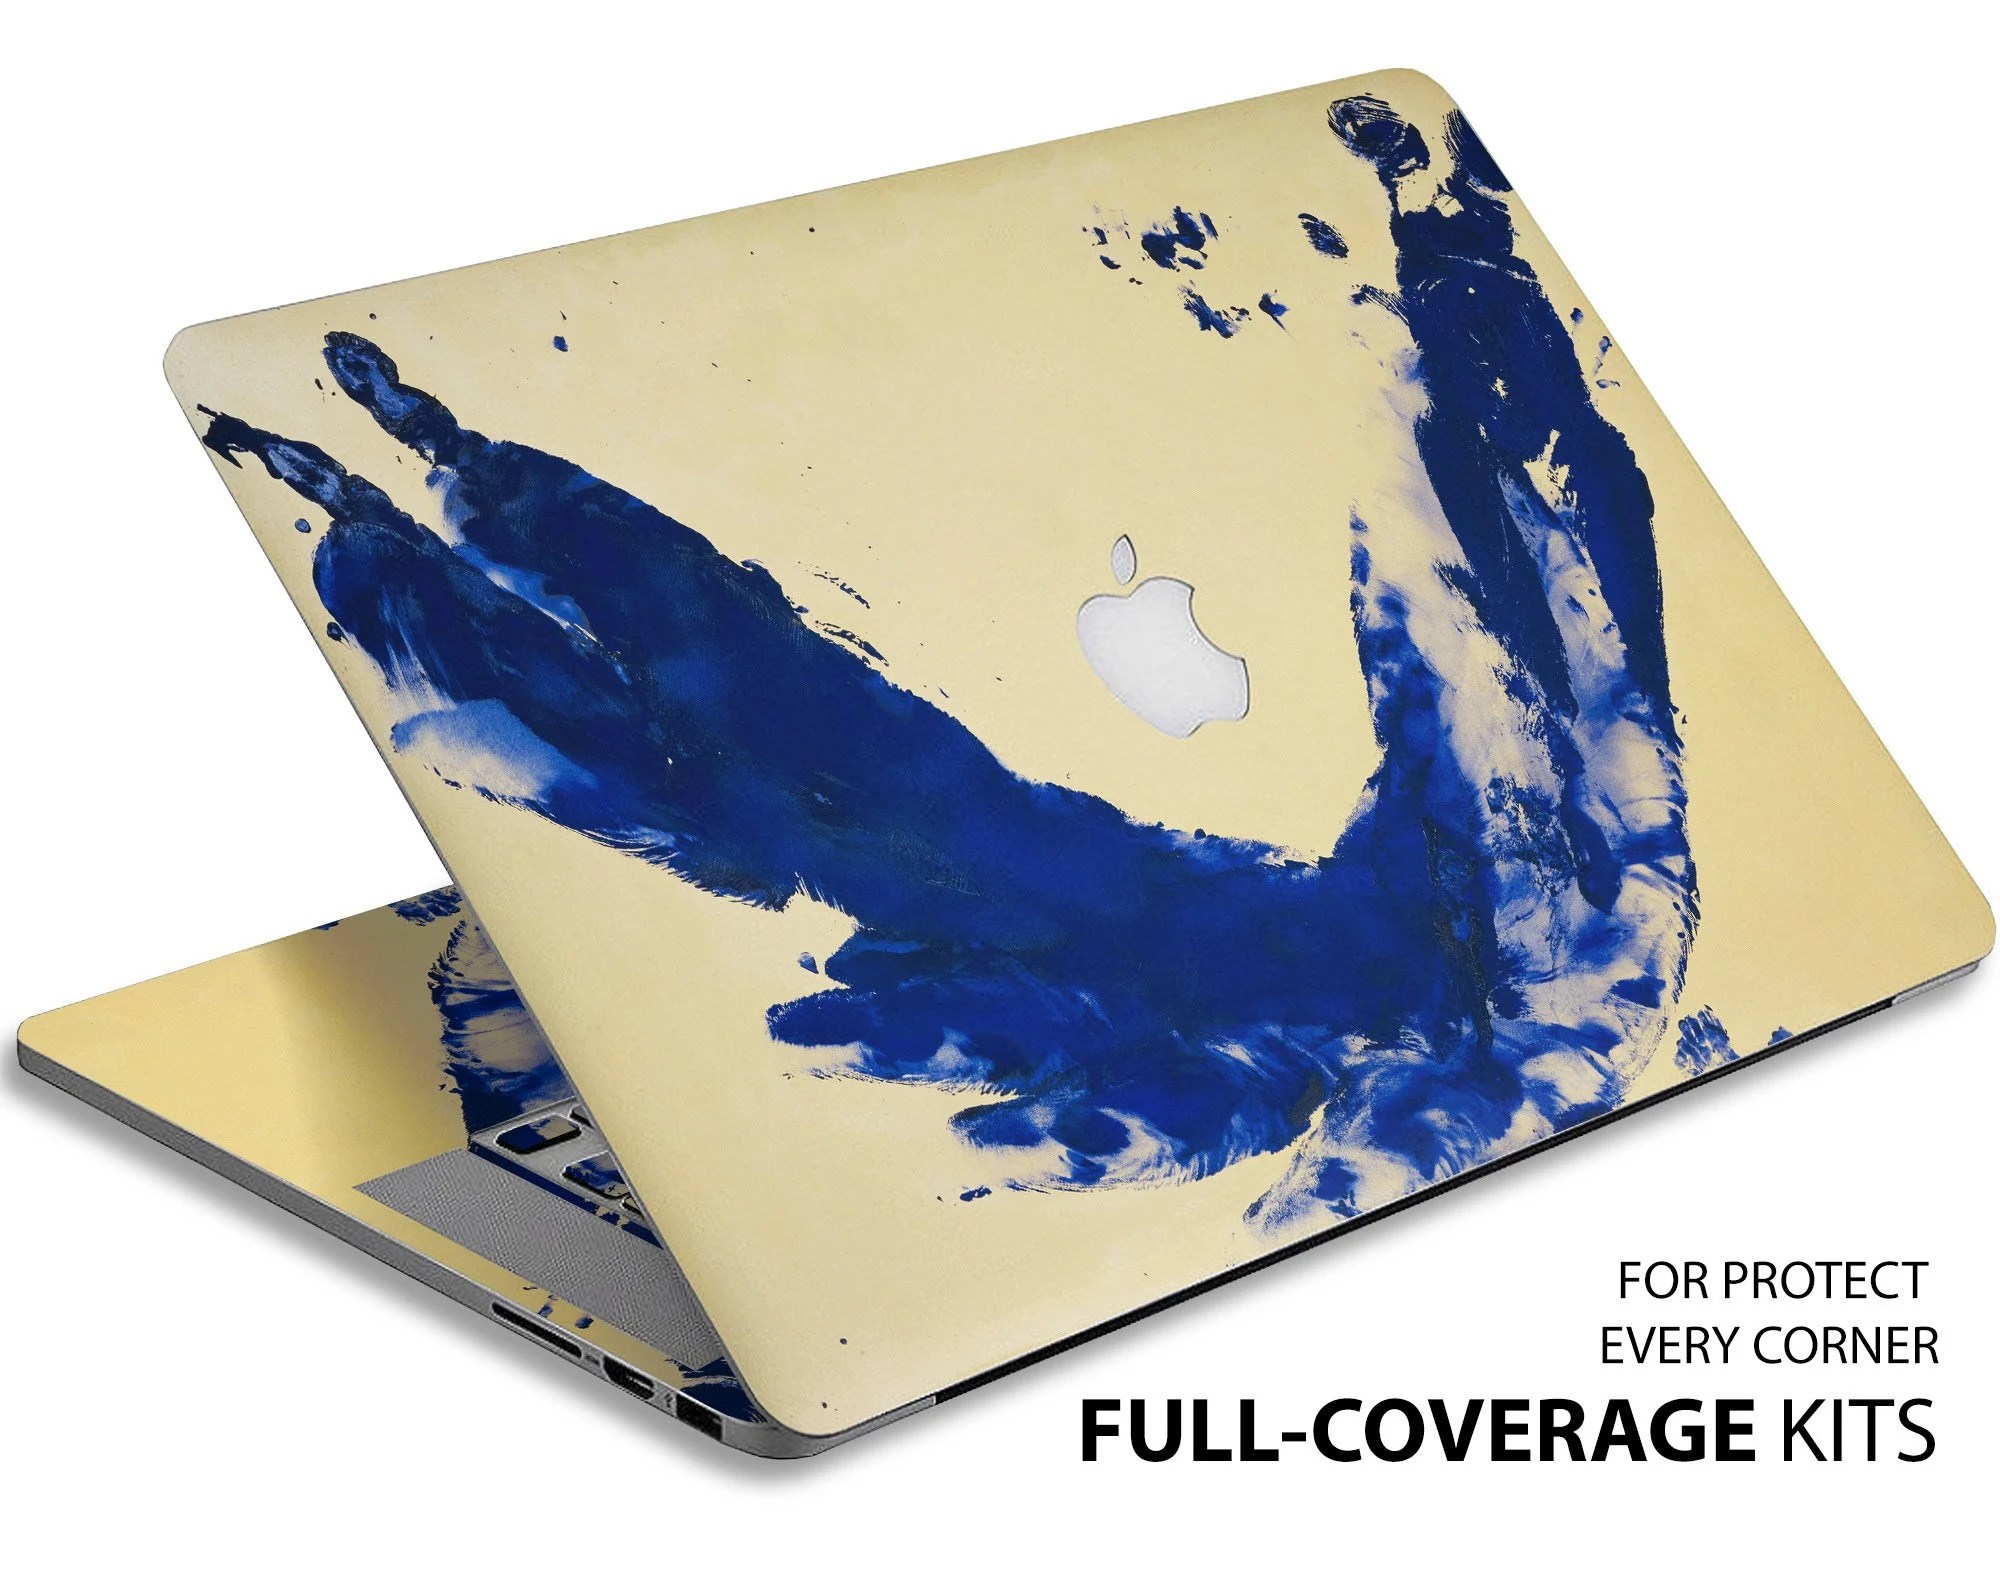 Notebook Klein Painting Yves Klein Anthropometry Abstract Laptop Skin Princess Helena Macbook Cover Decal Nature Macbook Decal Macbook Pro Skins Mac Skins